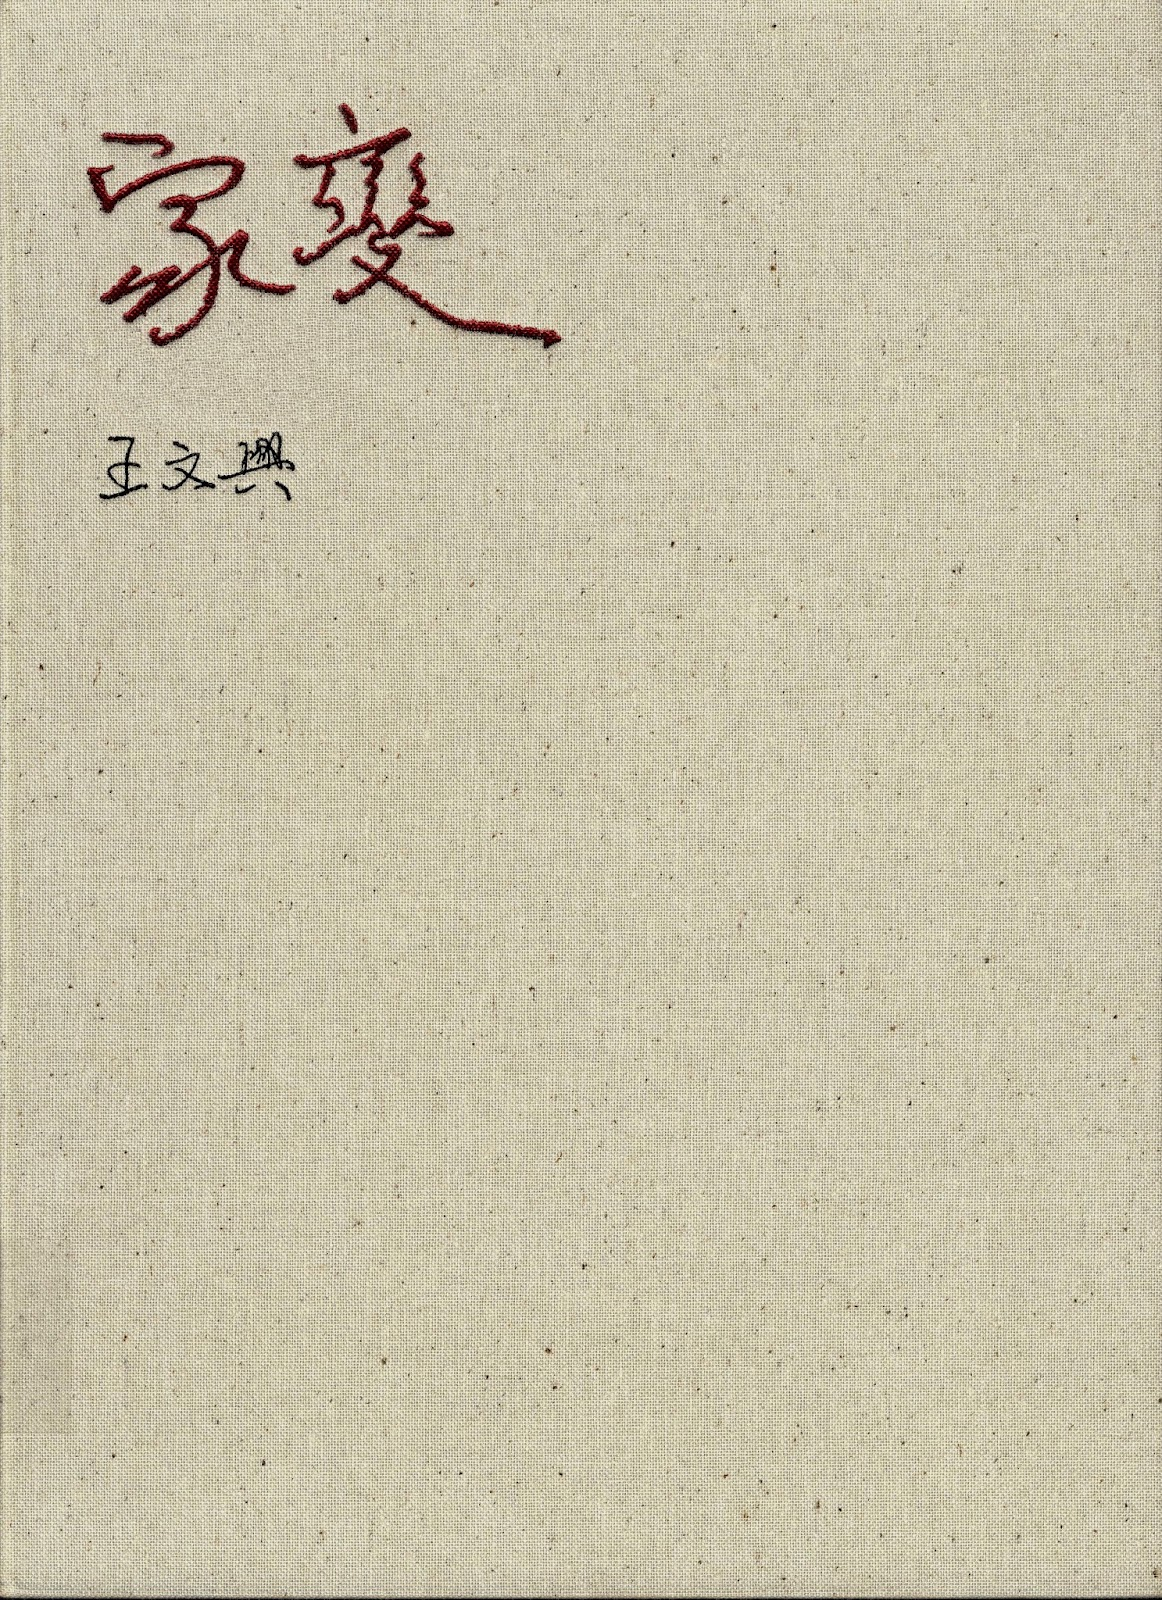 Wang Wen-Hsing's Manuscripts: Family Catastrophe, Backed against the Sea《王文興手稿集(套書)》(2010)